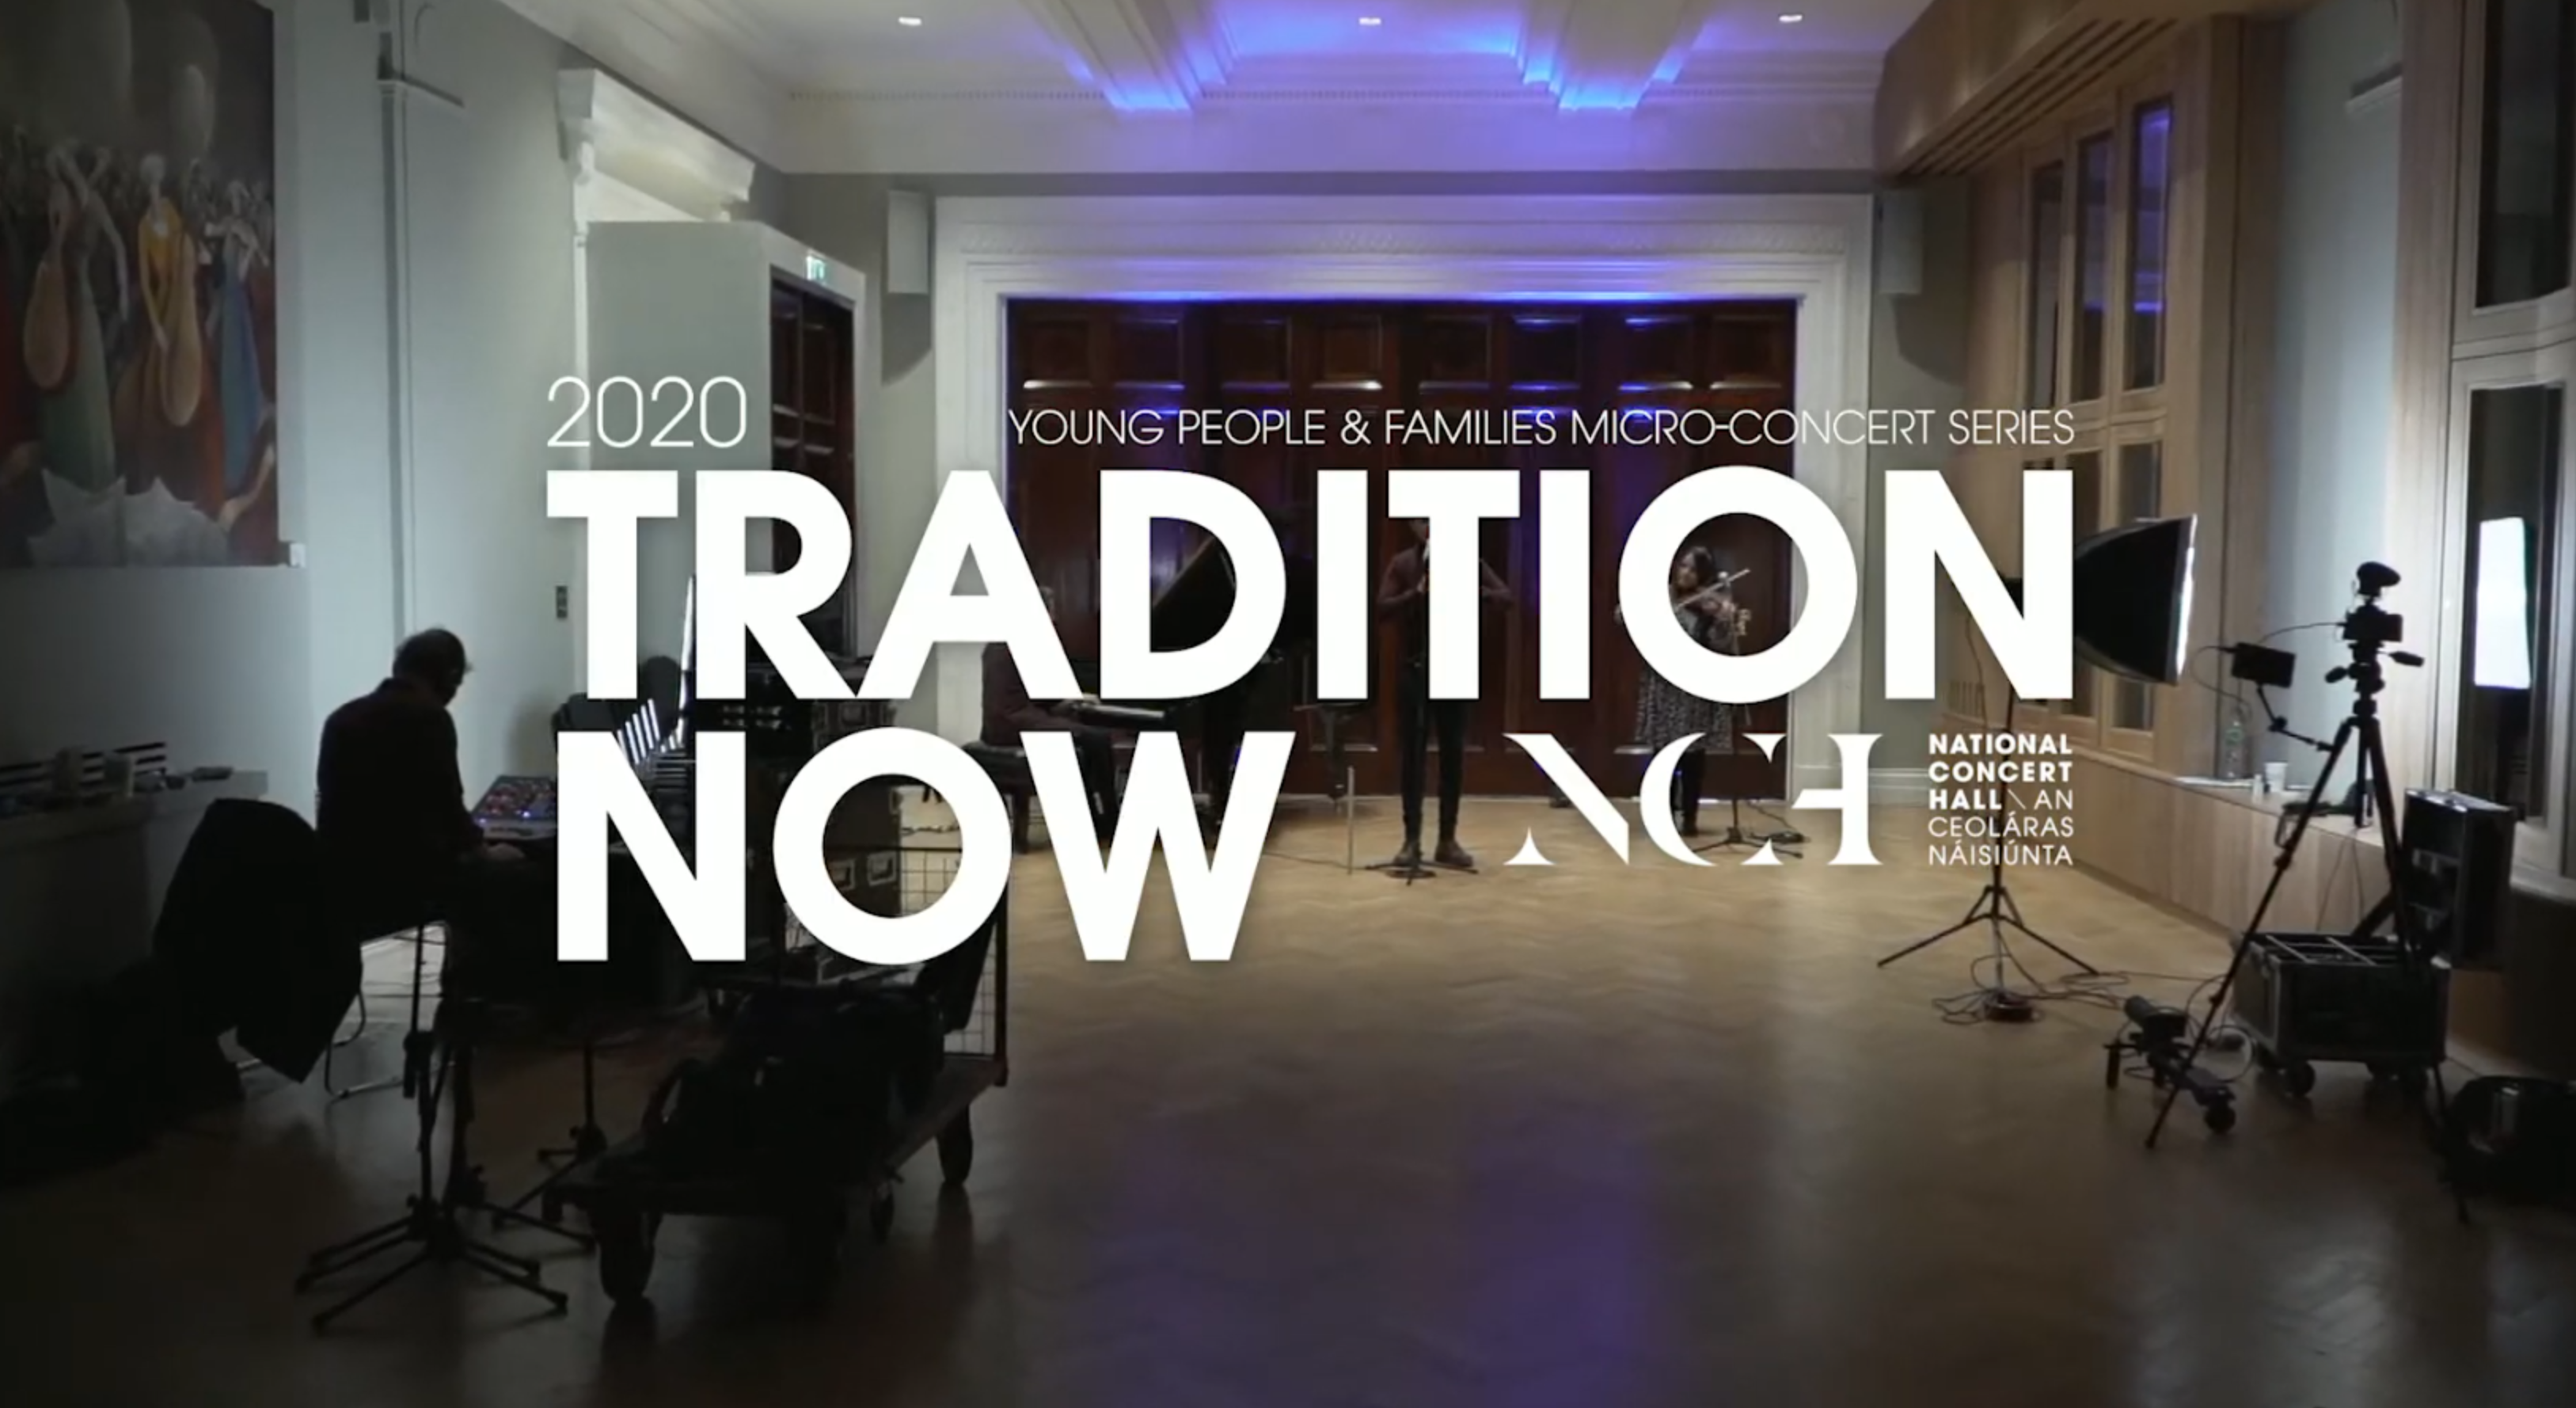 Ceol Connected perform at the National Concert Hall's Tradition Now Festival